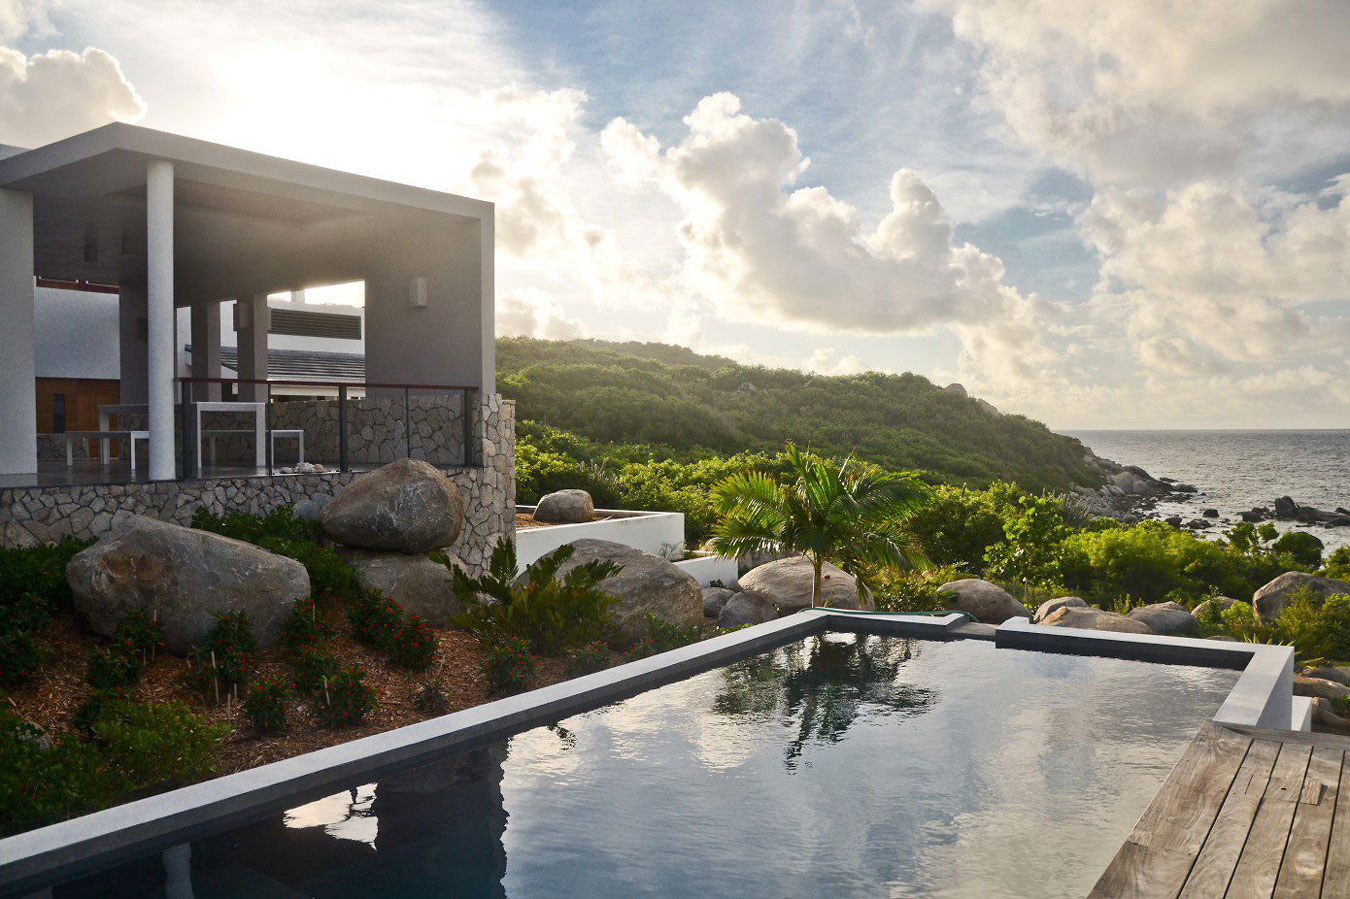 Bayhouse Villa on Virgin Gorda, British Virgin Islands